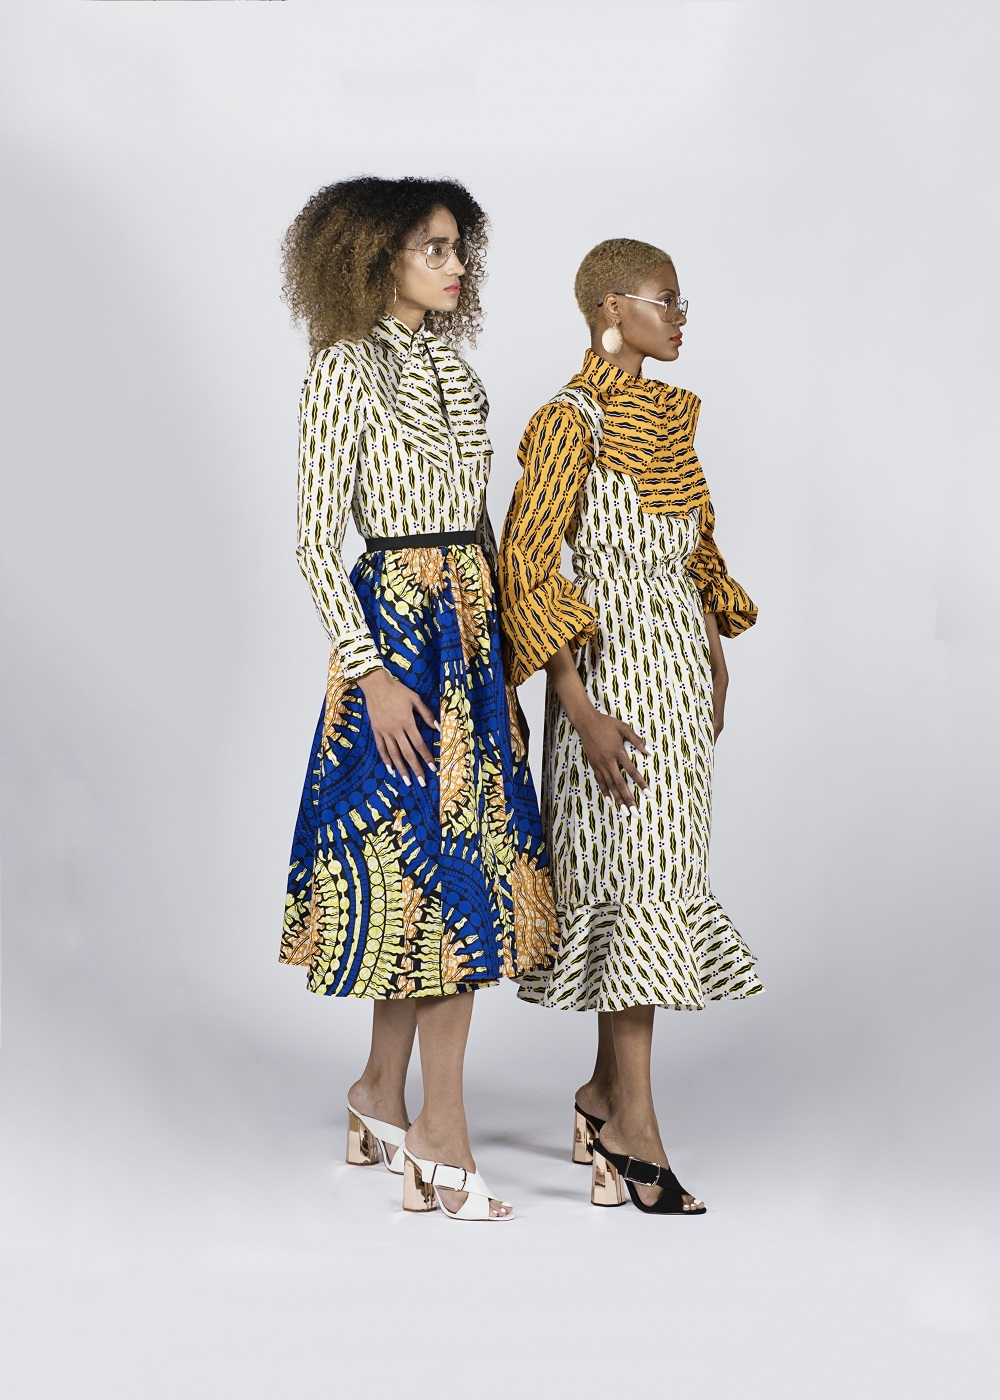 two women wearing ankara print dresses designed by rebuen reuel